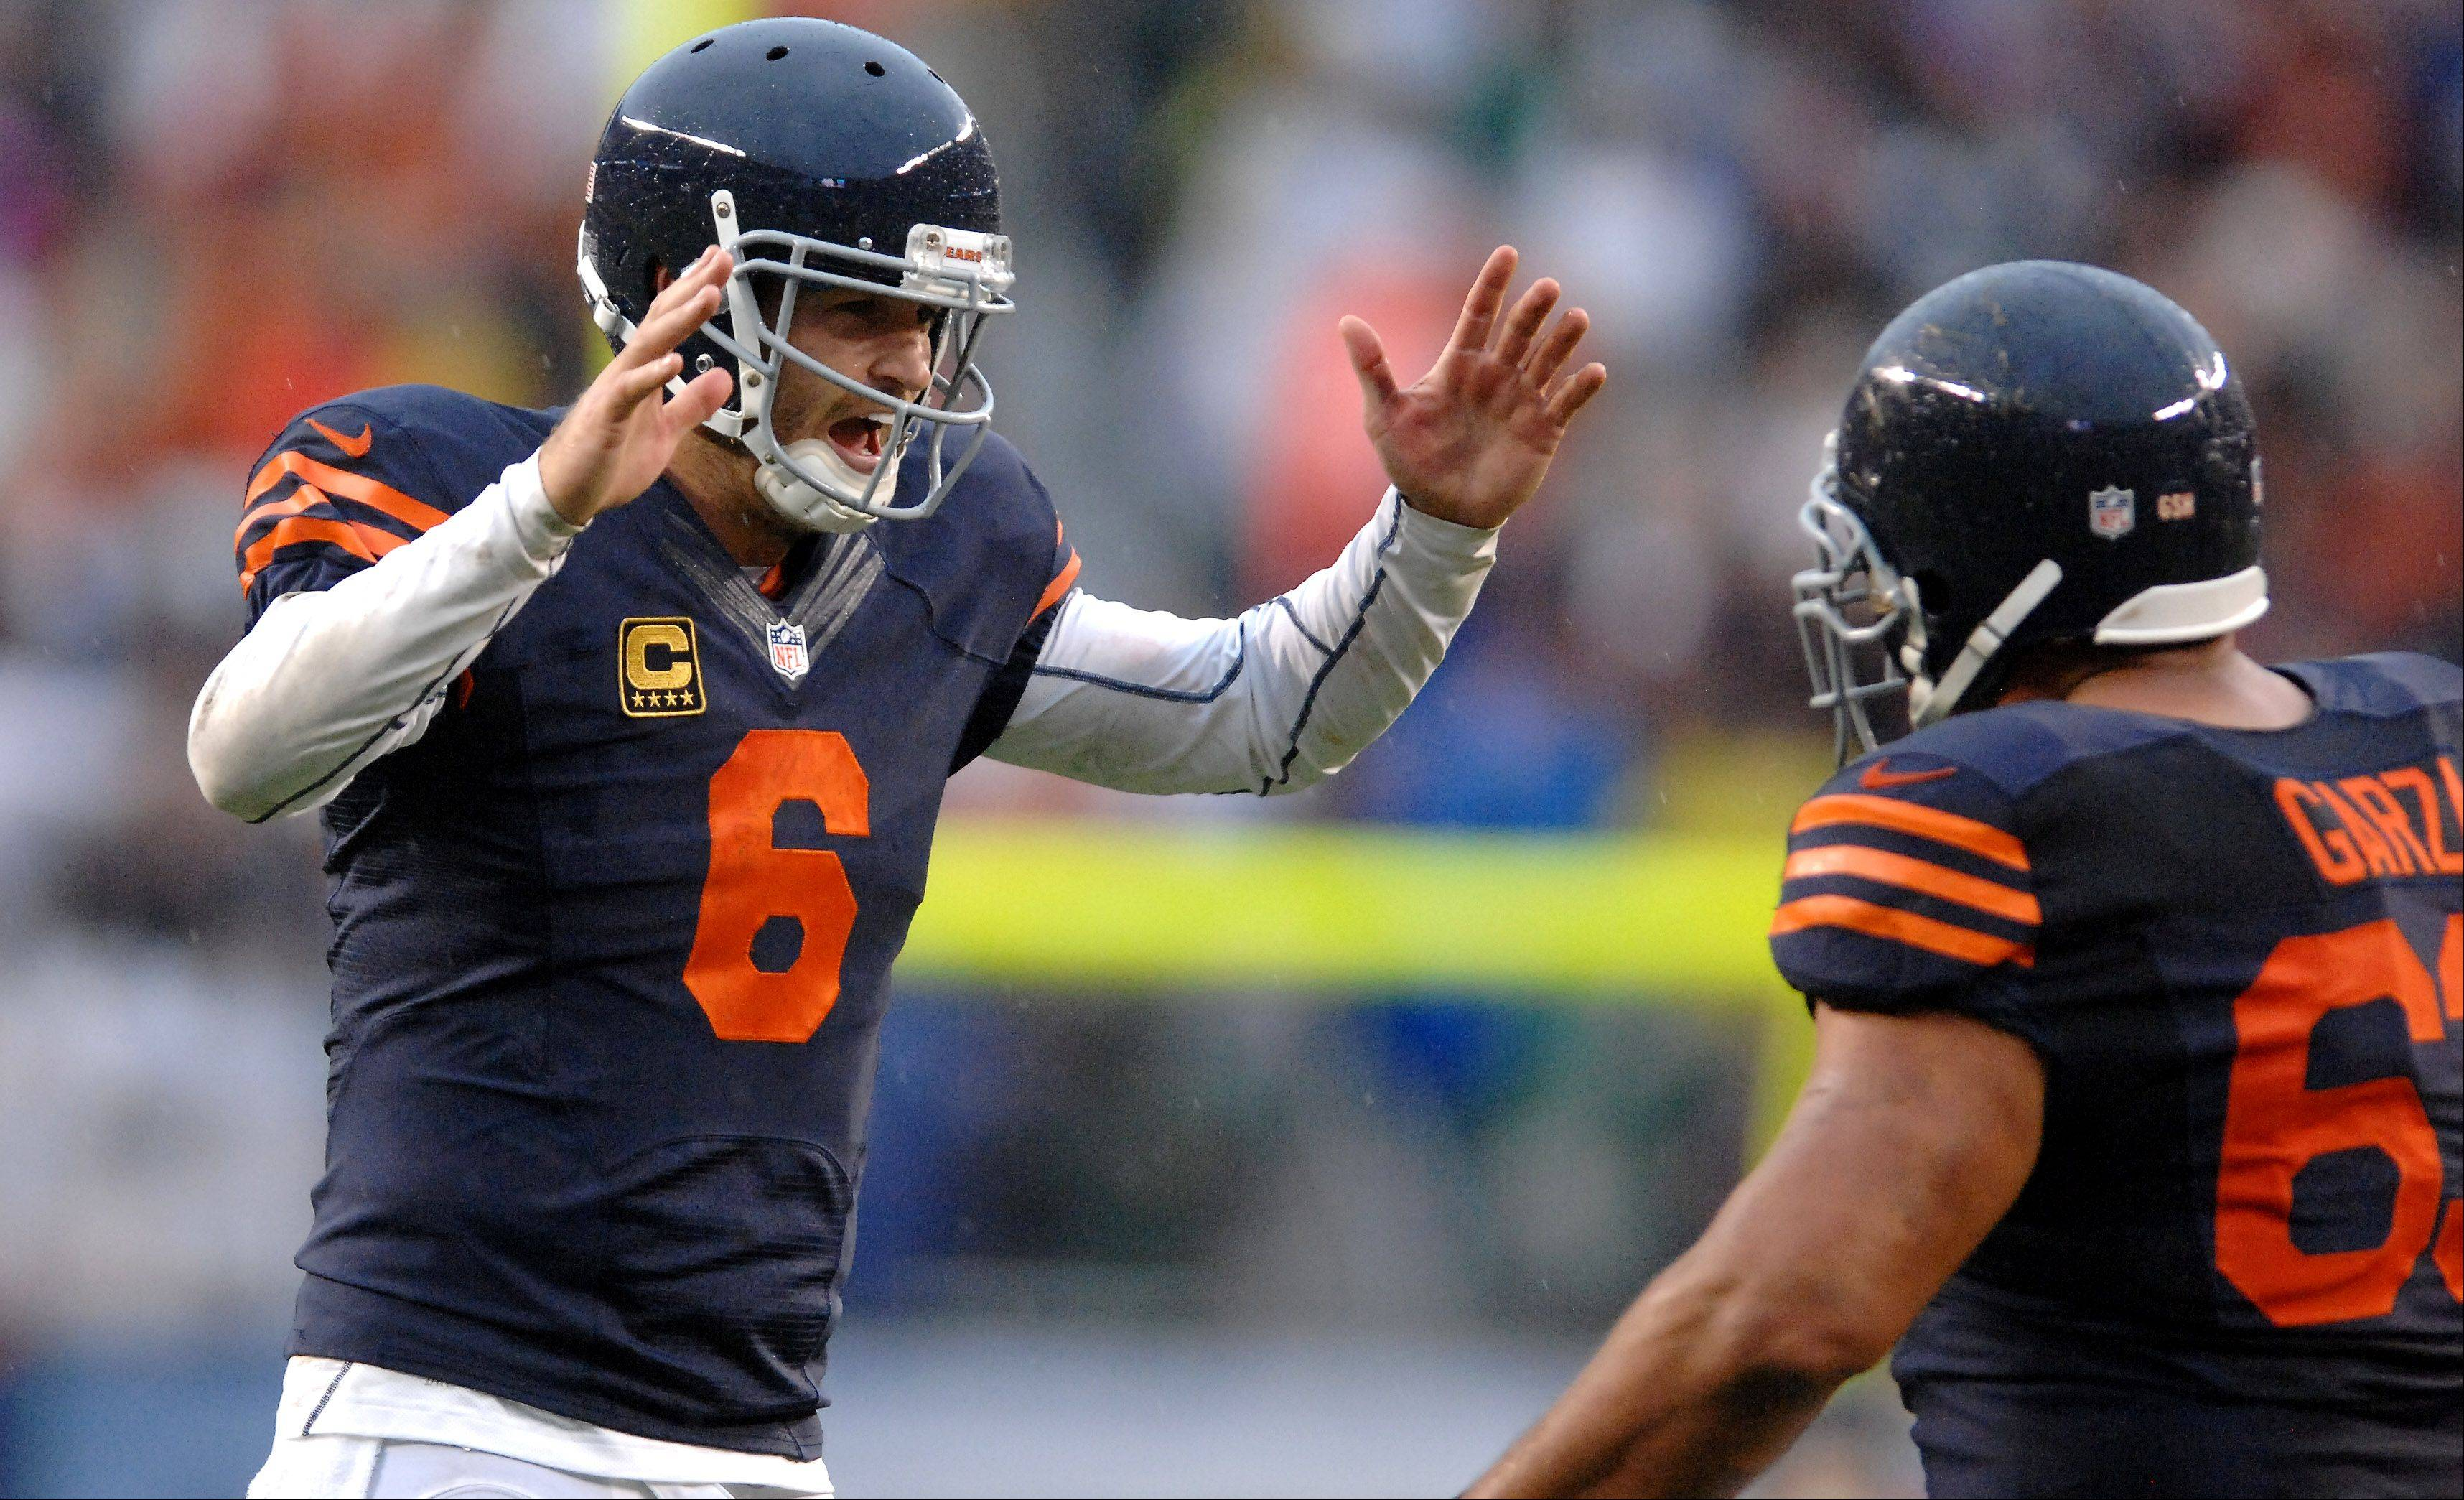 Chicago Bears quarterback Jay Cutler (6) celebrates the game-winning touchdown with center Roberto Garza (63) during Sunday's game at Soldier Field in Chicago.